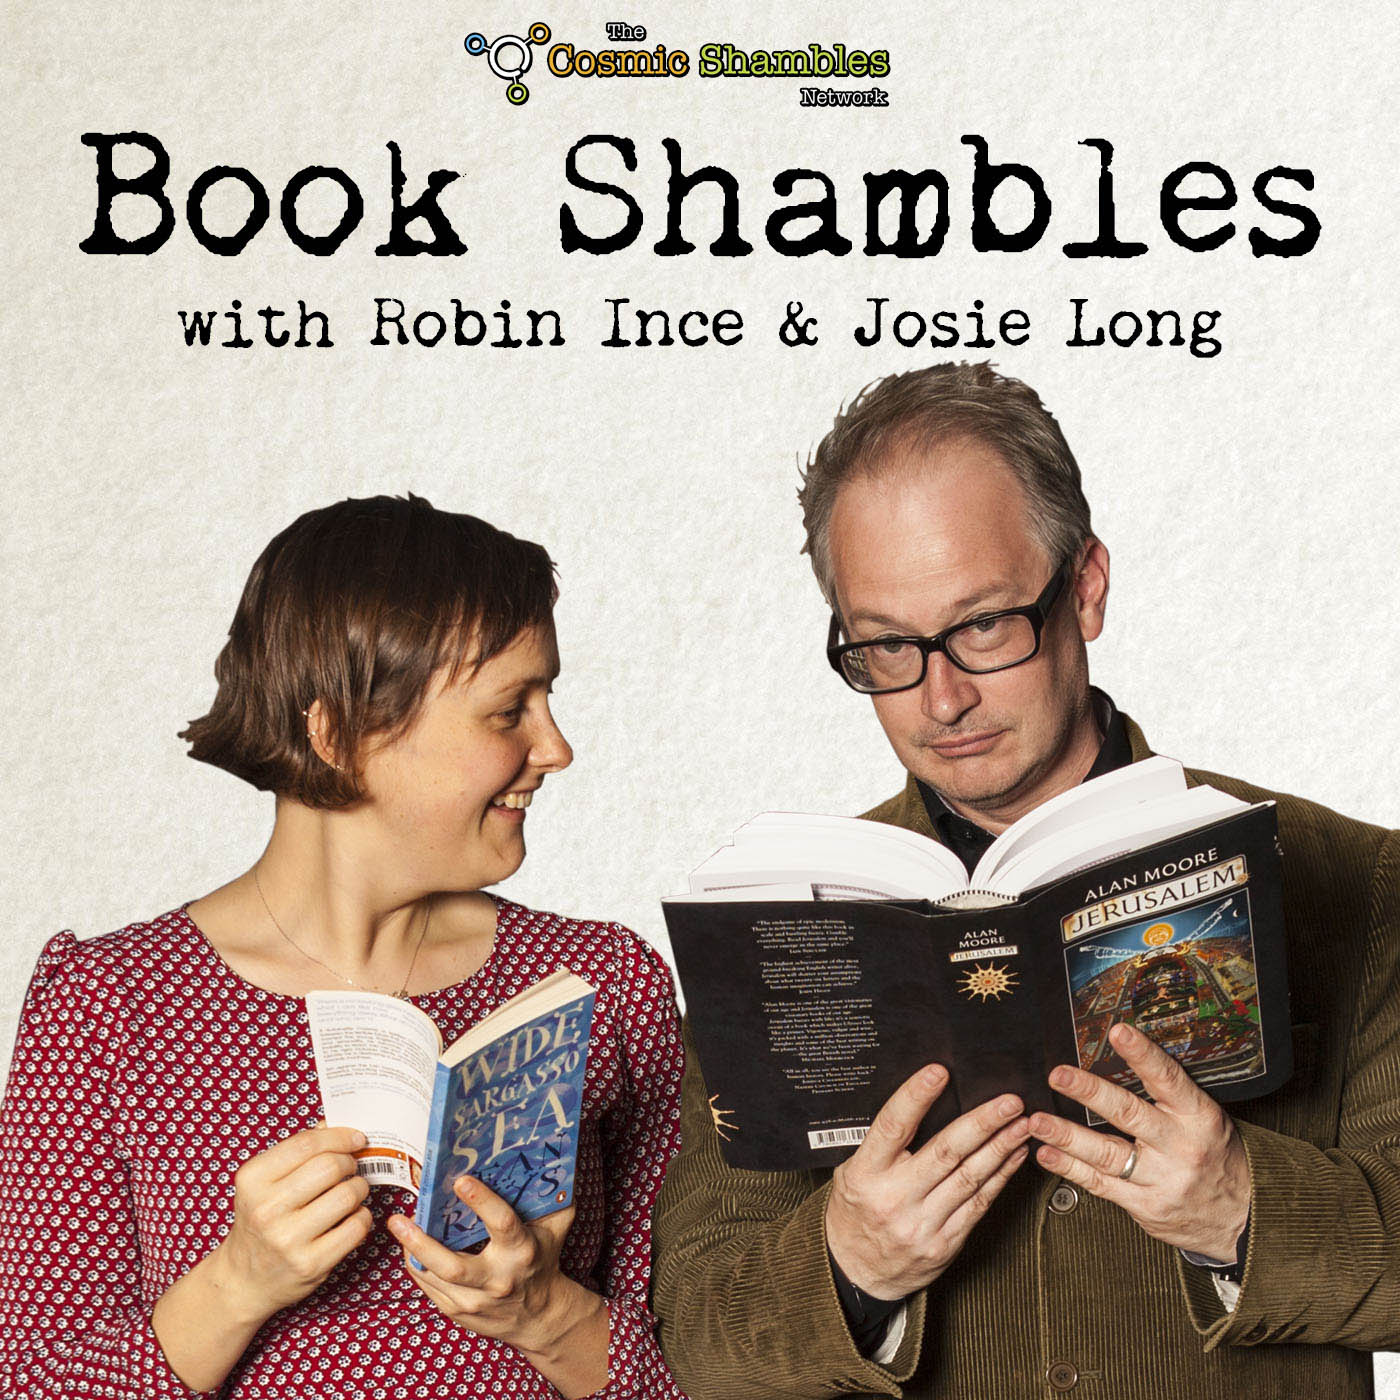 Book Shambles with Robin and Josie